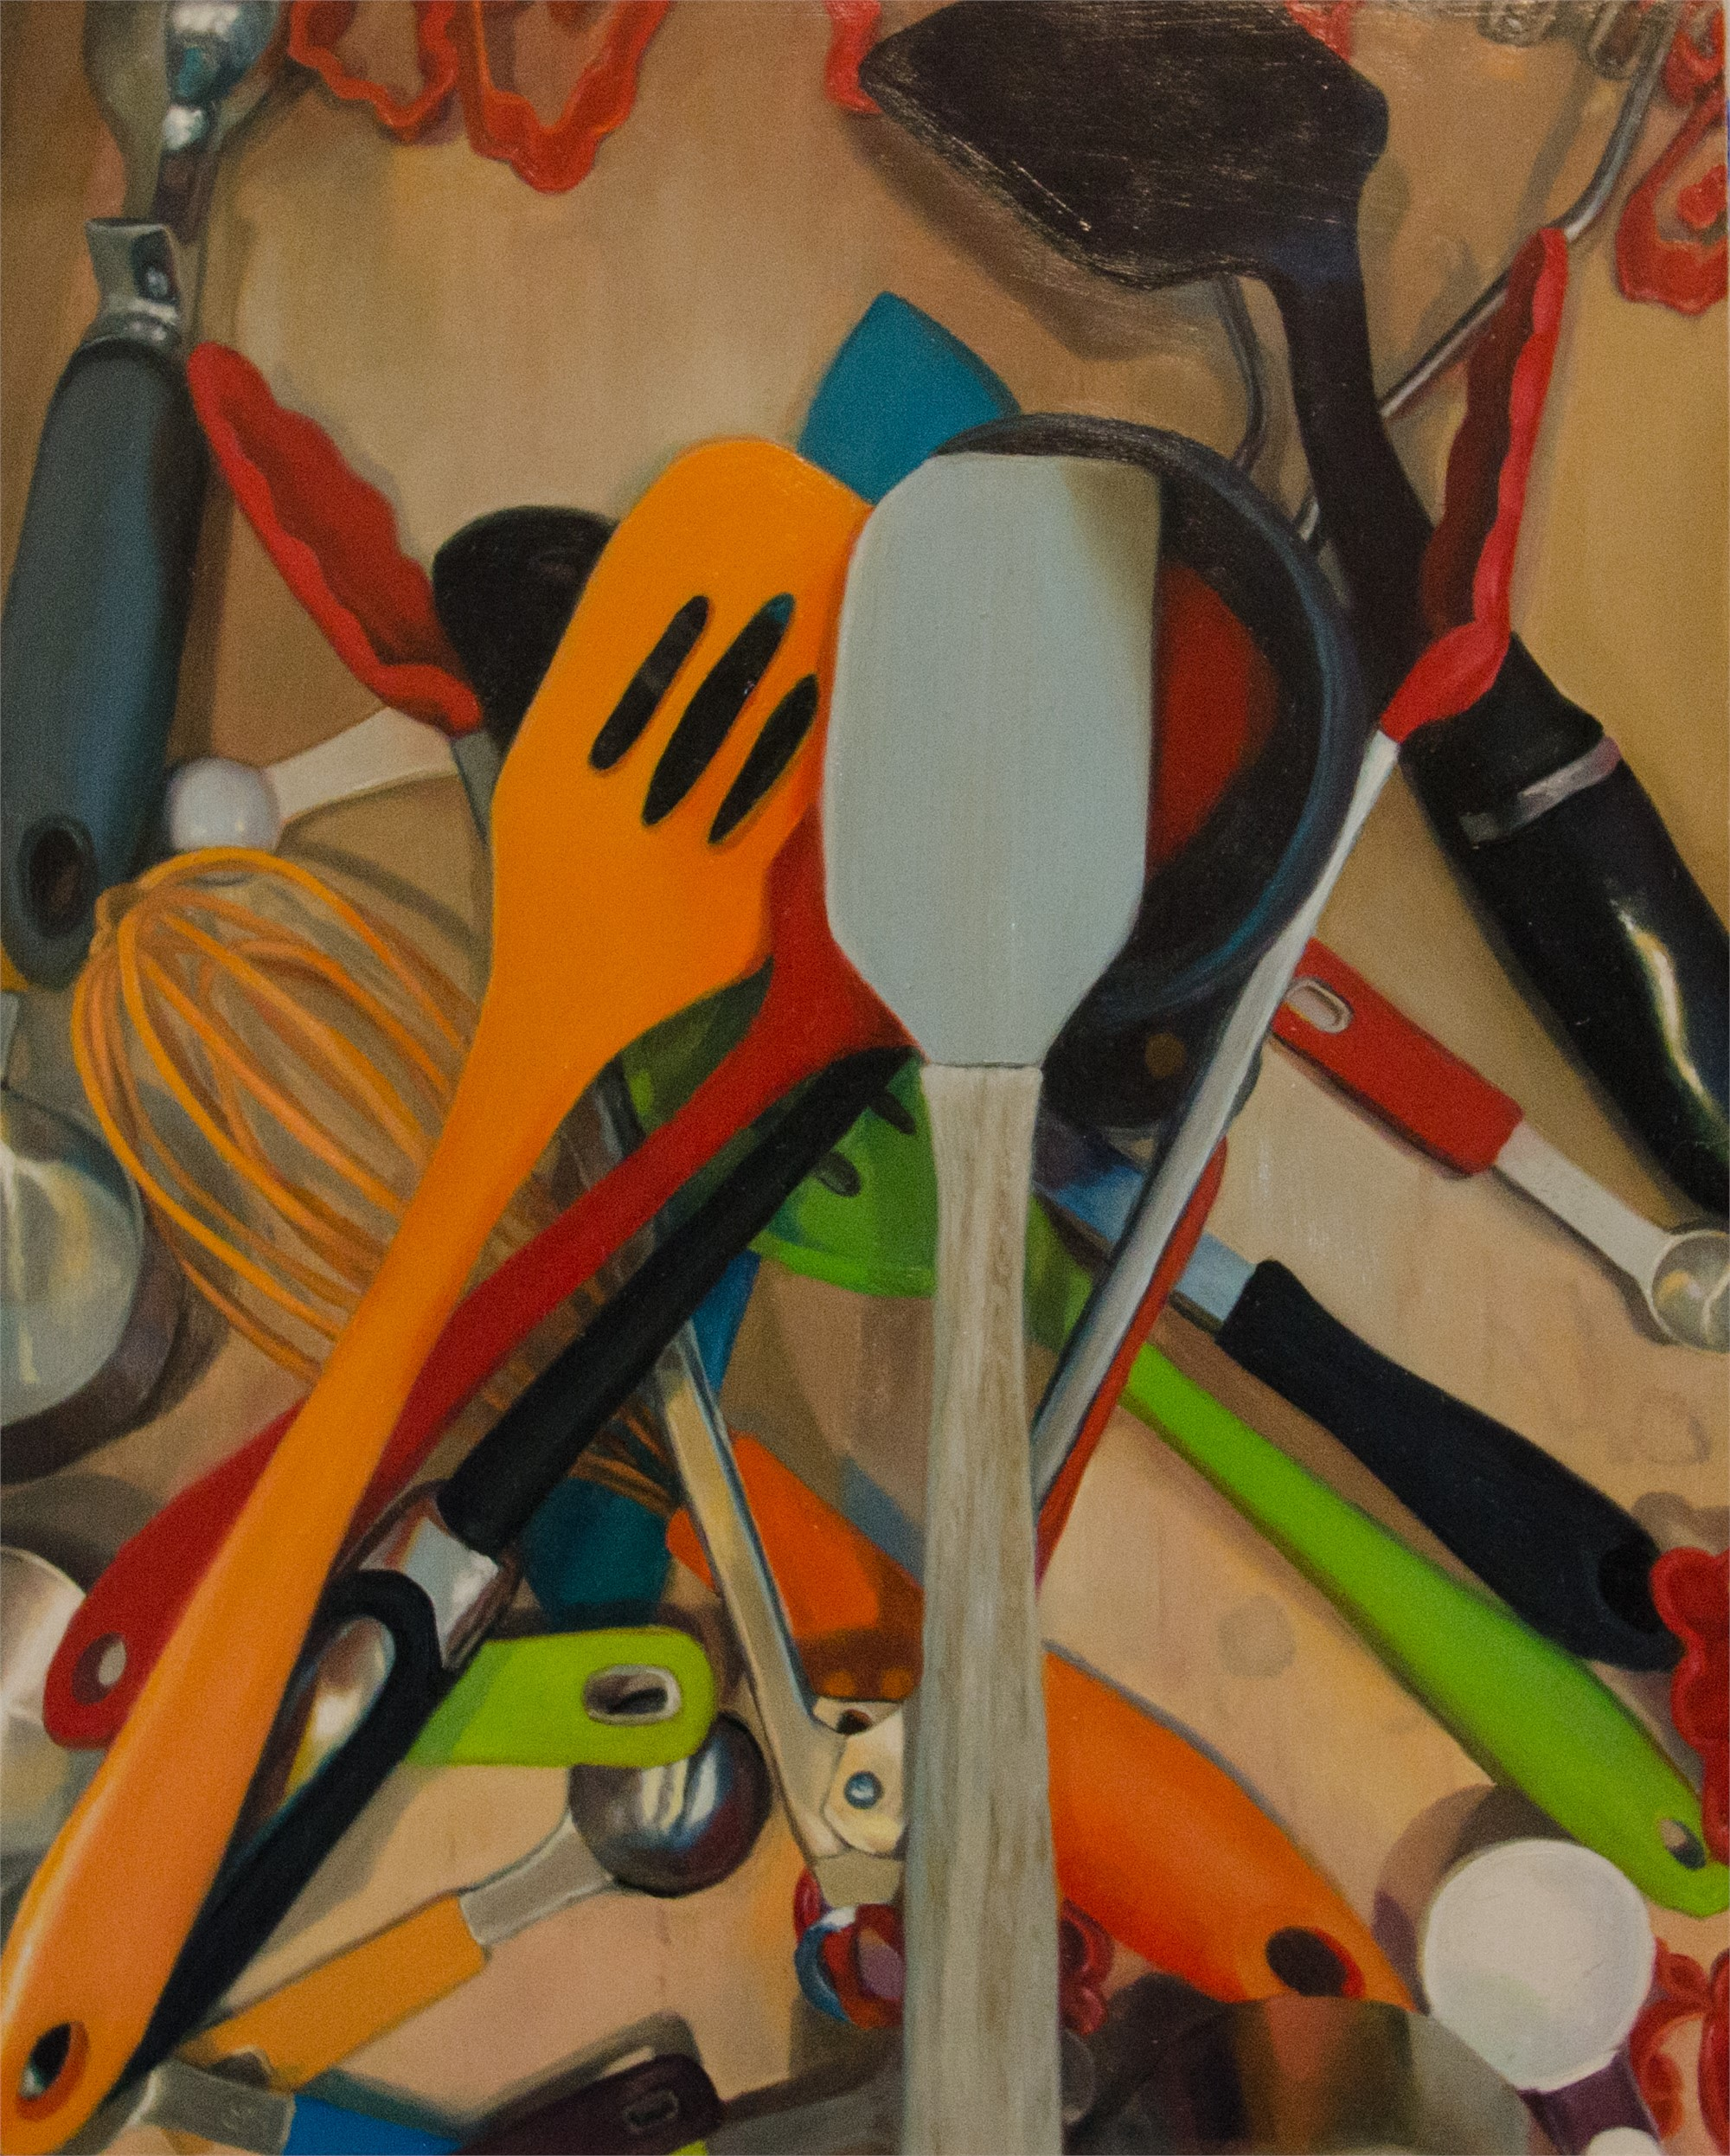 Inside, Utensil Drawer by Erin Milan